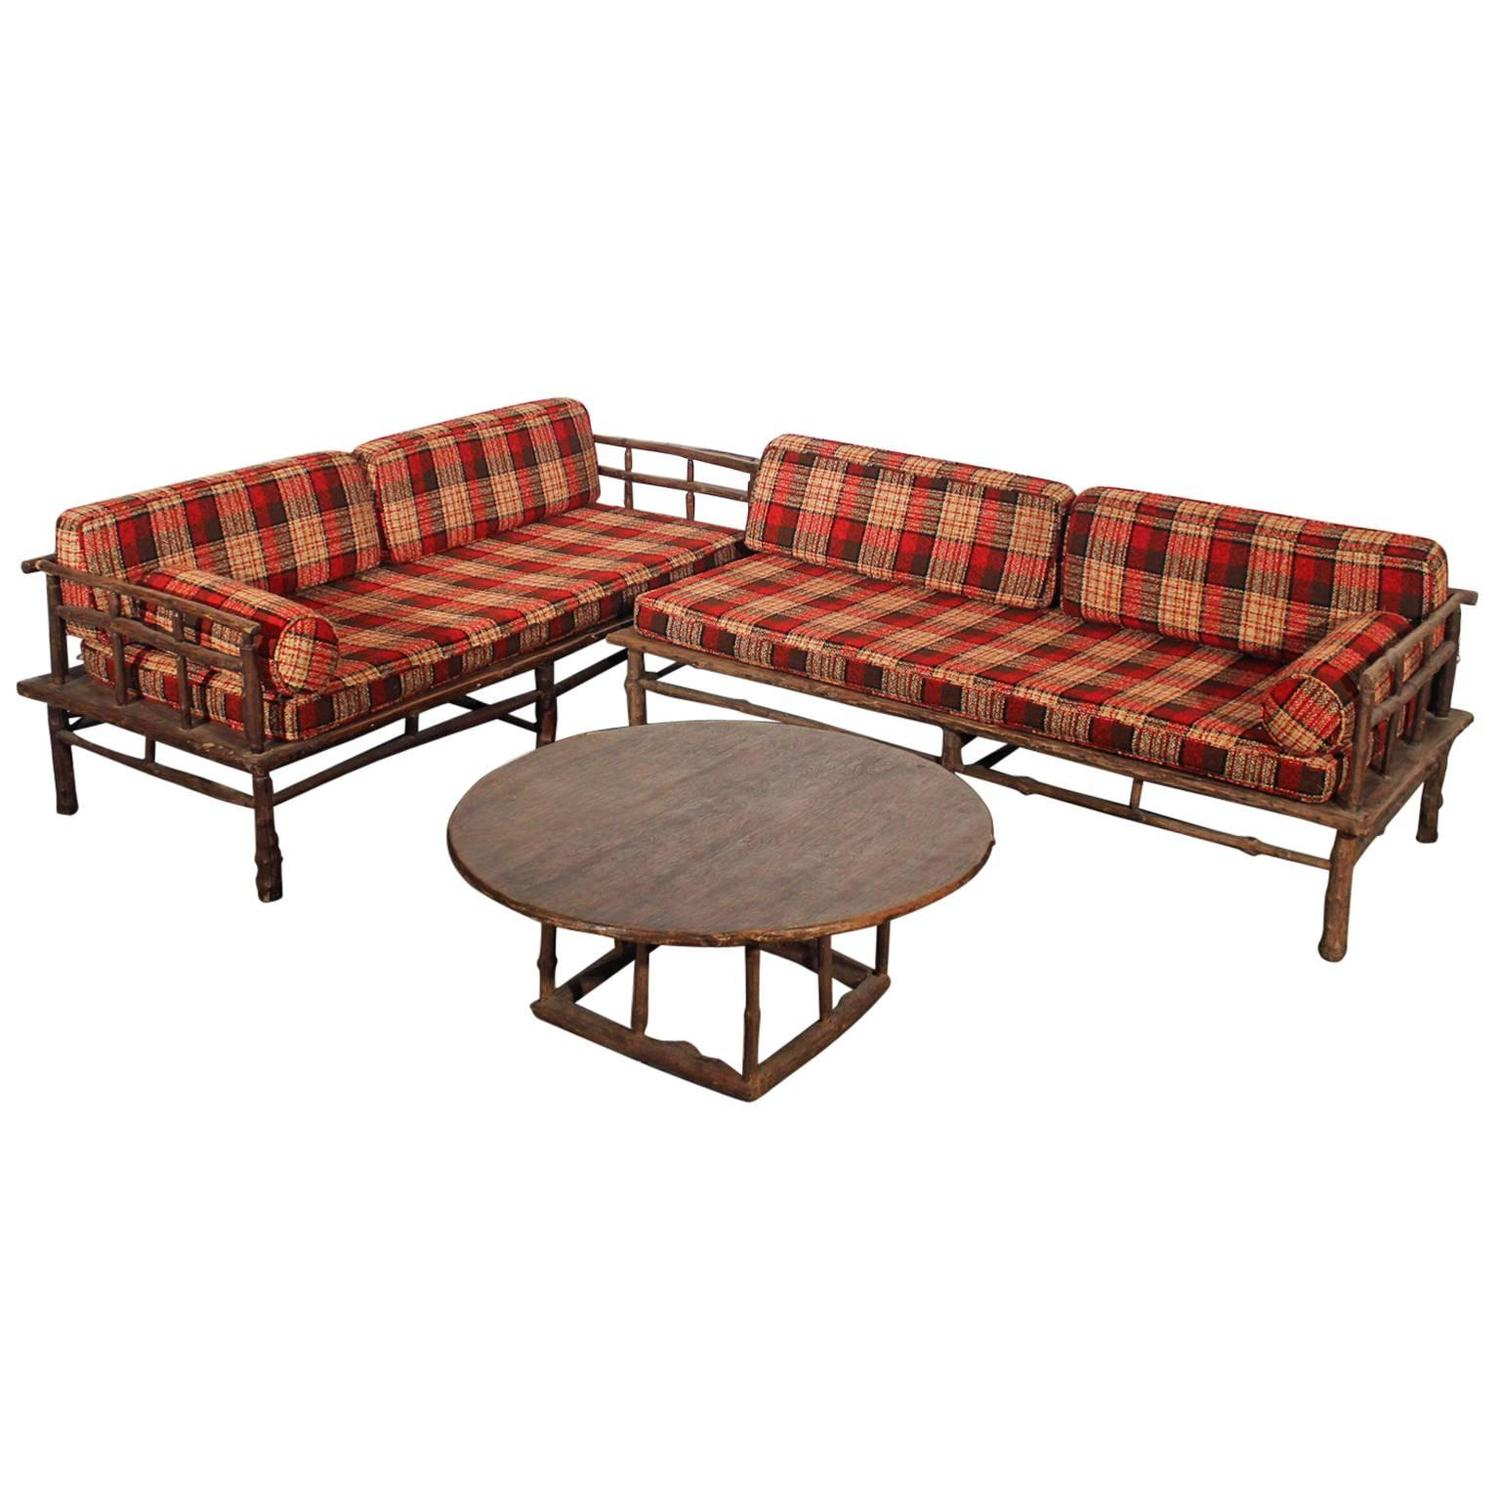 Old hickory style sofa chaise and coffee table set for for Chaise furniture sale